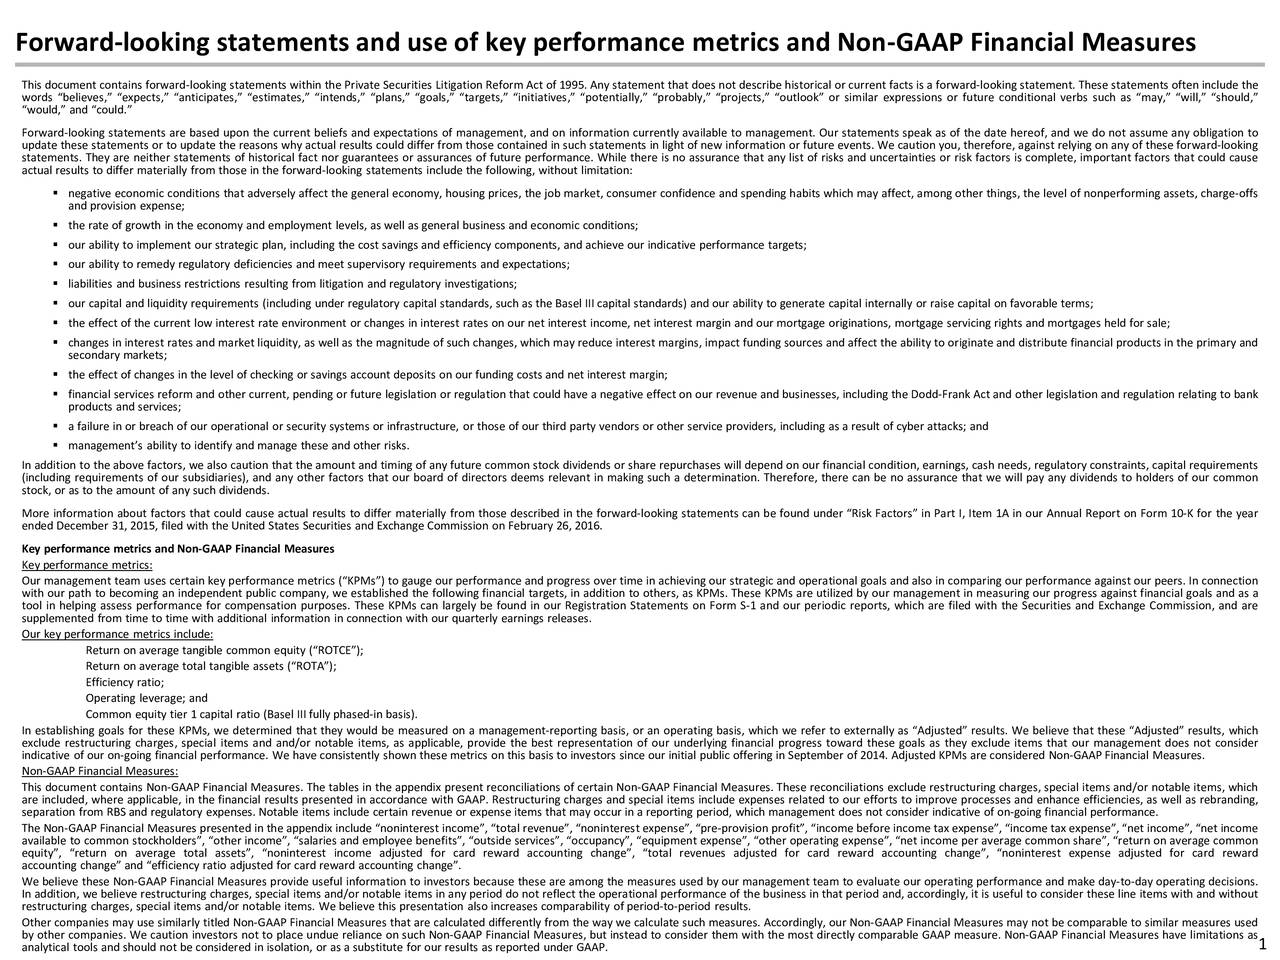 This document contains forward-looking statements within the Private Securities Litigation Reform Act of 1995. Any statement that does not describe historical or current facts is a forward-looking statement. These statements often include the words believes, expects, anticipates, estimates, intends, plans, goals, targets, initiatives, potentially, probably, projects, outlook or similar expressions or future conditional verbs such as may, will, should, would, and could. Forward-looking statements are based upon the current beliefs and expectations of management, and on information currently available to management. Our statements speak as of the date hereof, and we do not assume any obligation to update these statements or to update the reasons why actual results could differ from those contained in such statements in light of new information or future events. We caution you, therefore, against relying on any of these forward-looking statements. They are neither statements of historical fact nor guarantees or assurances of future performance. While there is no assurance that any list of risks and uncertainties or risk factors is complete, important factors that could cause actual results to differ materially from those in the forward-looking statements include the following, without limitation: negative economic conditions that adversely affect the general economy, housing prices, the job market, consumer confidence and spending habits which may affect, among other things, the level of nonperforming assets, charge-offs and provision expense; the rate of growth in the economy and employment levels, as well as general business and economic conditions; our ability to implement our strategic plan, including the cost savings and efficiency components, and achieve our indicative performance targets; our ability to remedy regulatory deficiencies and meet supervisory requirements and expectations; liabilities and business restrictions resulting from litigation and regulatory